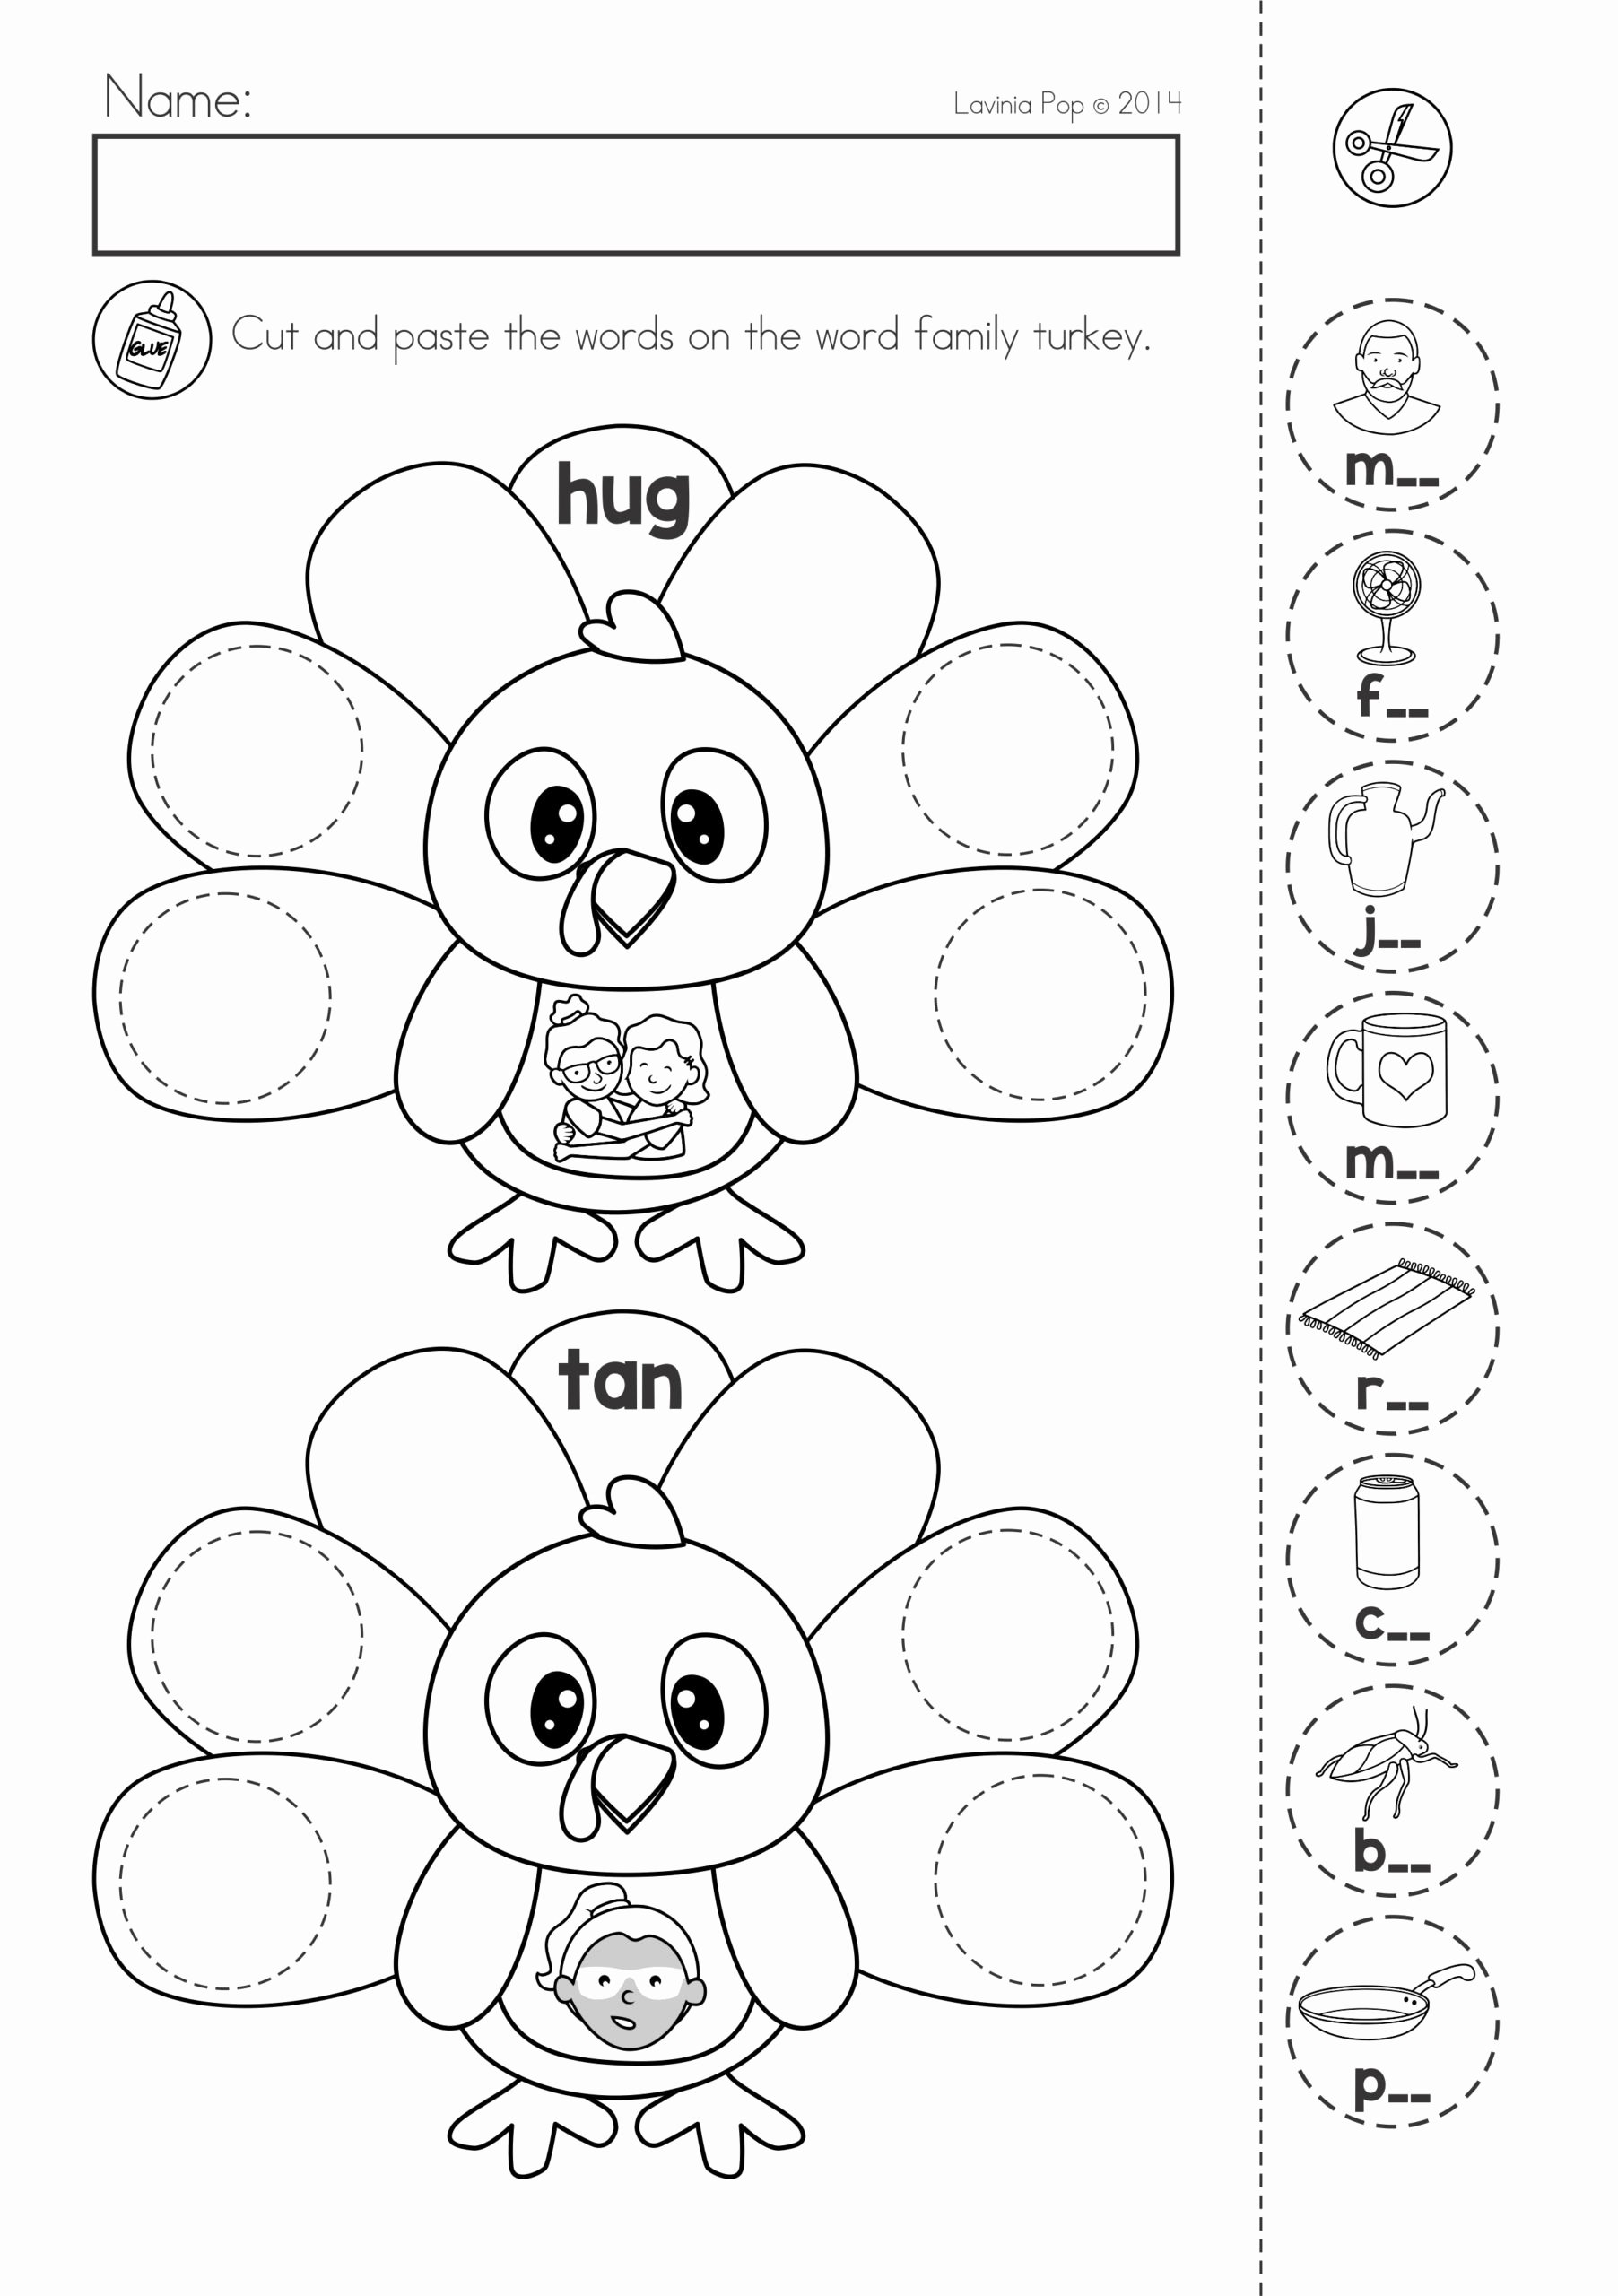 Free Printable Cut and Paste Worksheets for Preschoolers Kids Free Preschool Printables Cut and Paste Worksheet Four Line